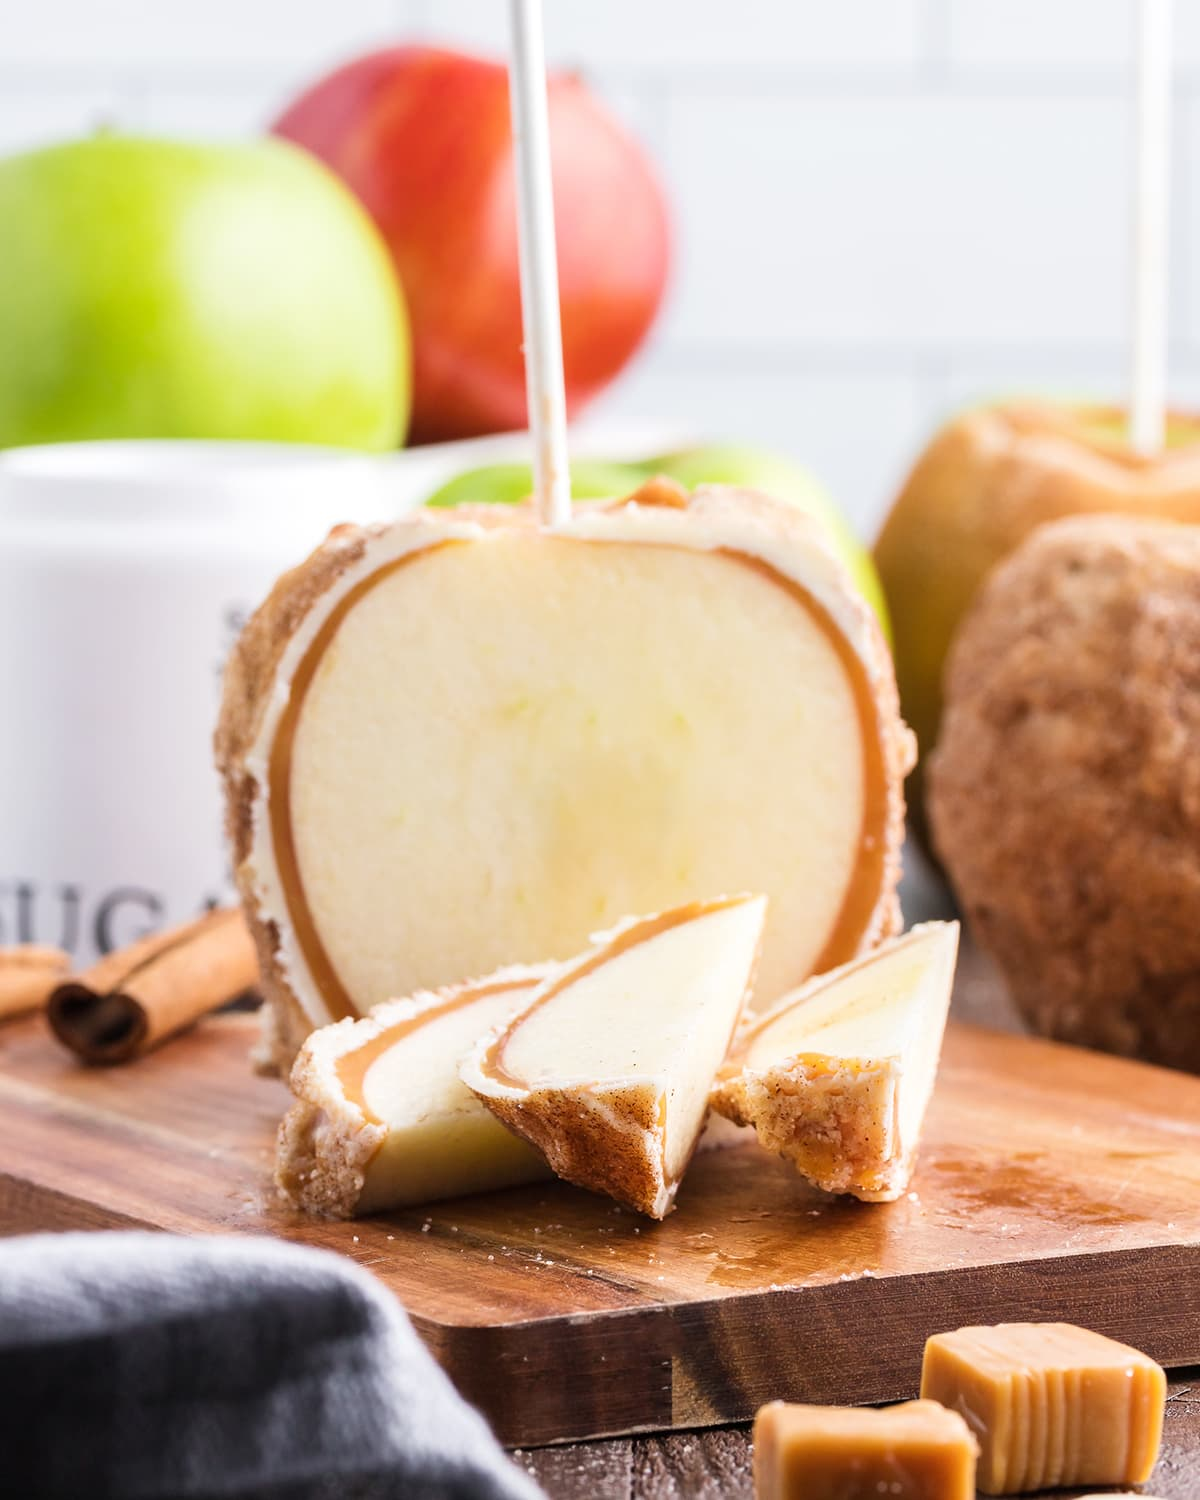 A cinnamon caramel apple cut up with three slices laying in front of it.